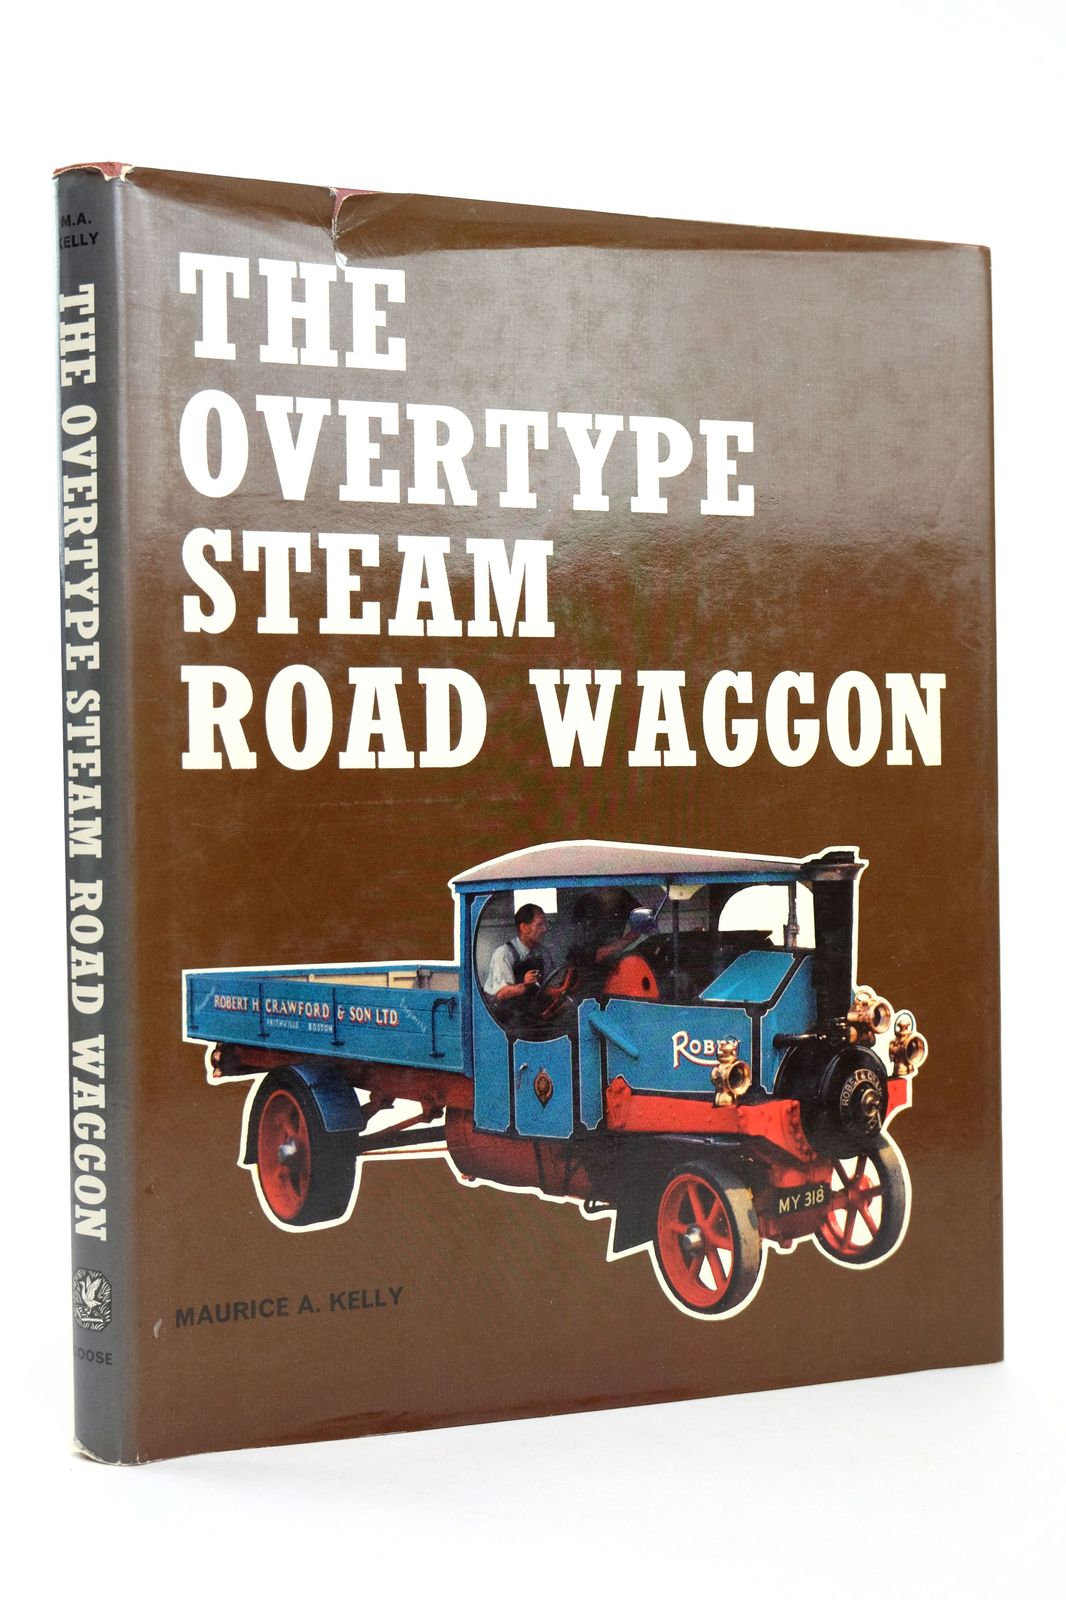 Photo of THE OVERTYPE STEAM ROAD WAGON written by Kelly, Maurice A. published by Goose and Son (STOCK CODE: 1818682)  for sale by Stella & Rose's Books